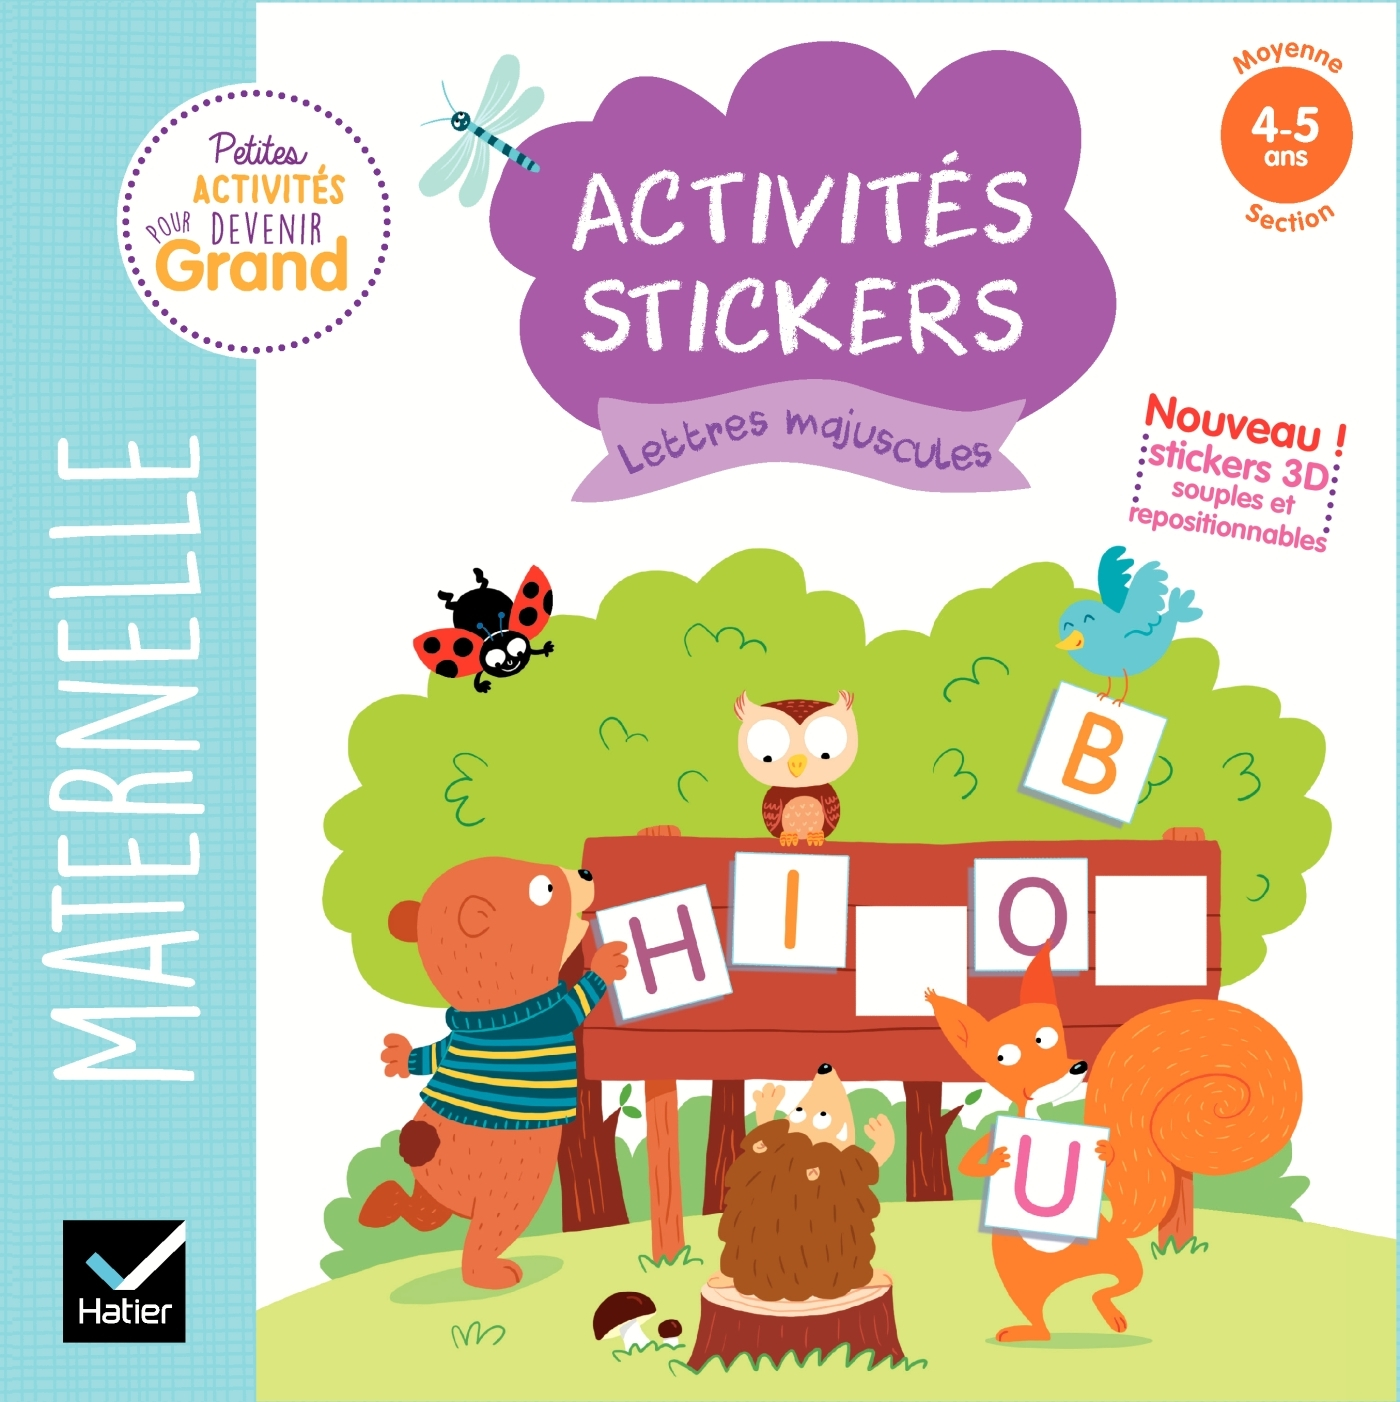 ACTIVITES STICKERS - LETTRES MAJUSCULES MOYENNE SECTION